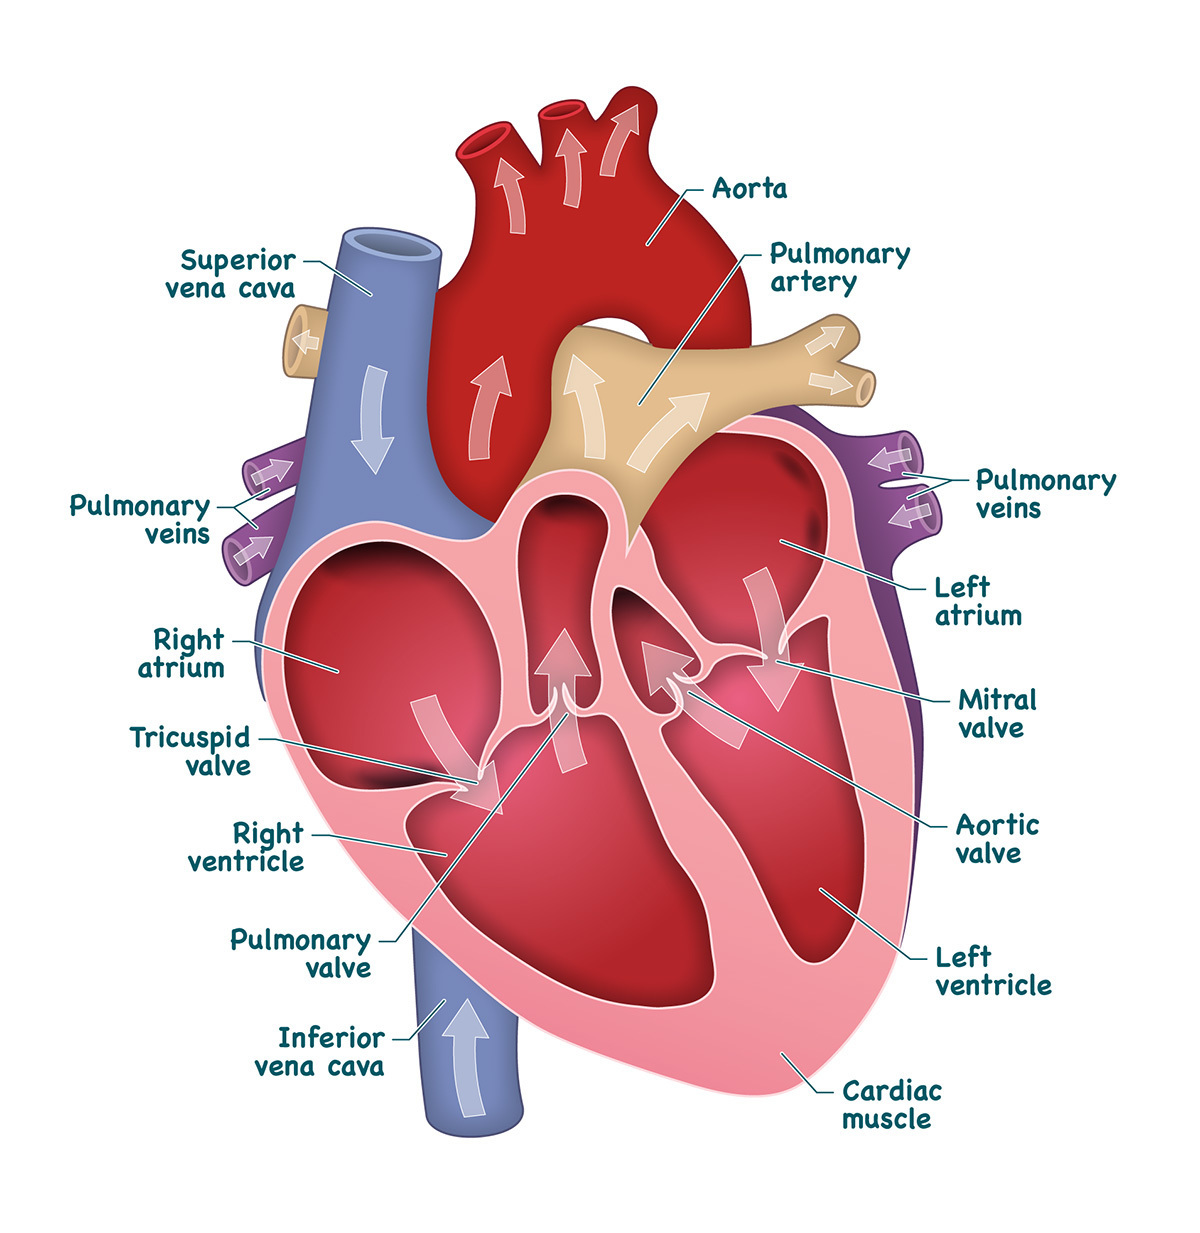 Draw A Heart Label The Chambers And Draw Arrows To Show The Flow Of Blood Through The Heart